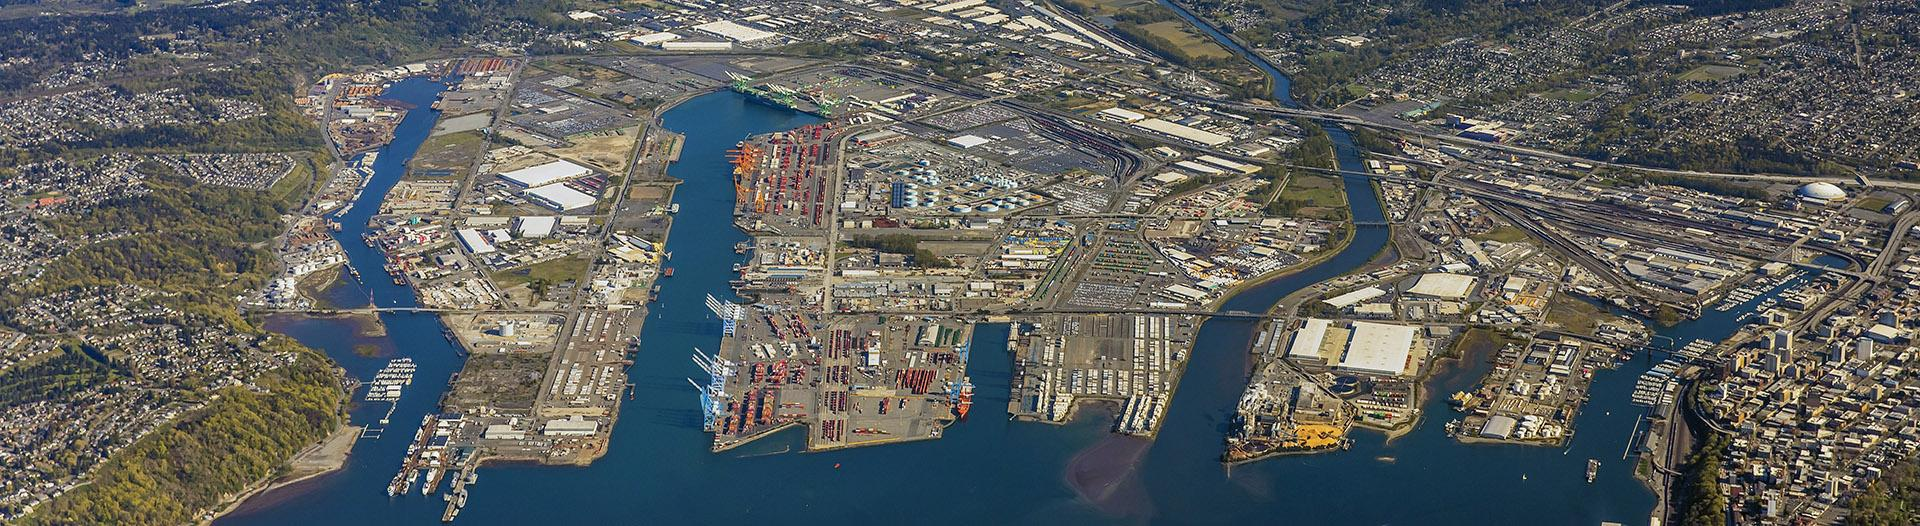 Aerial view of the Port of Tacoma